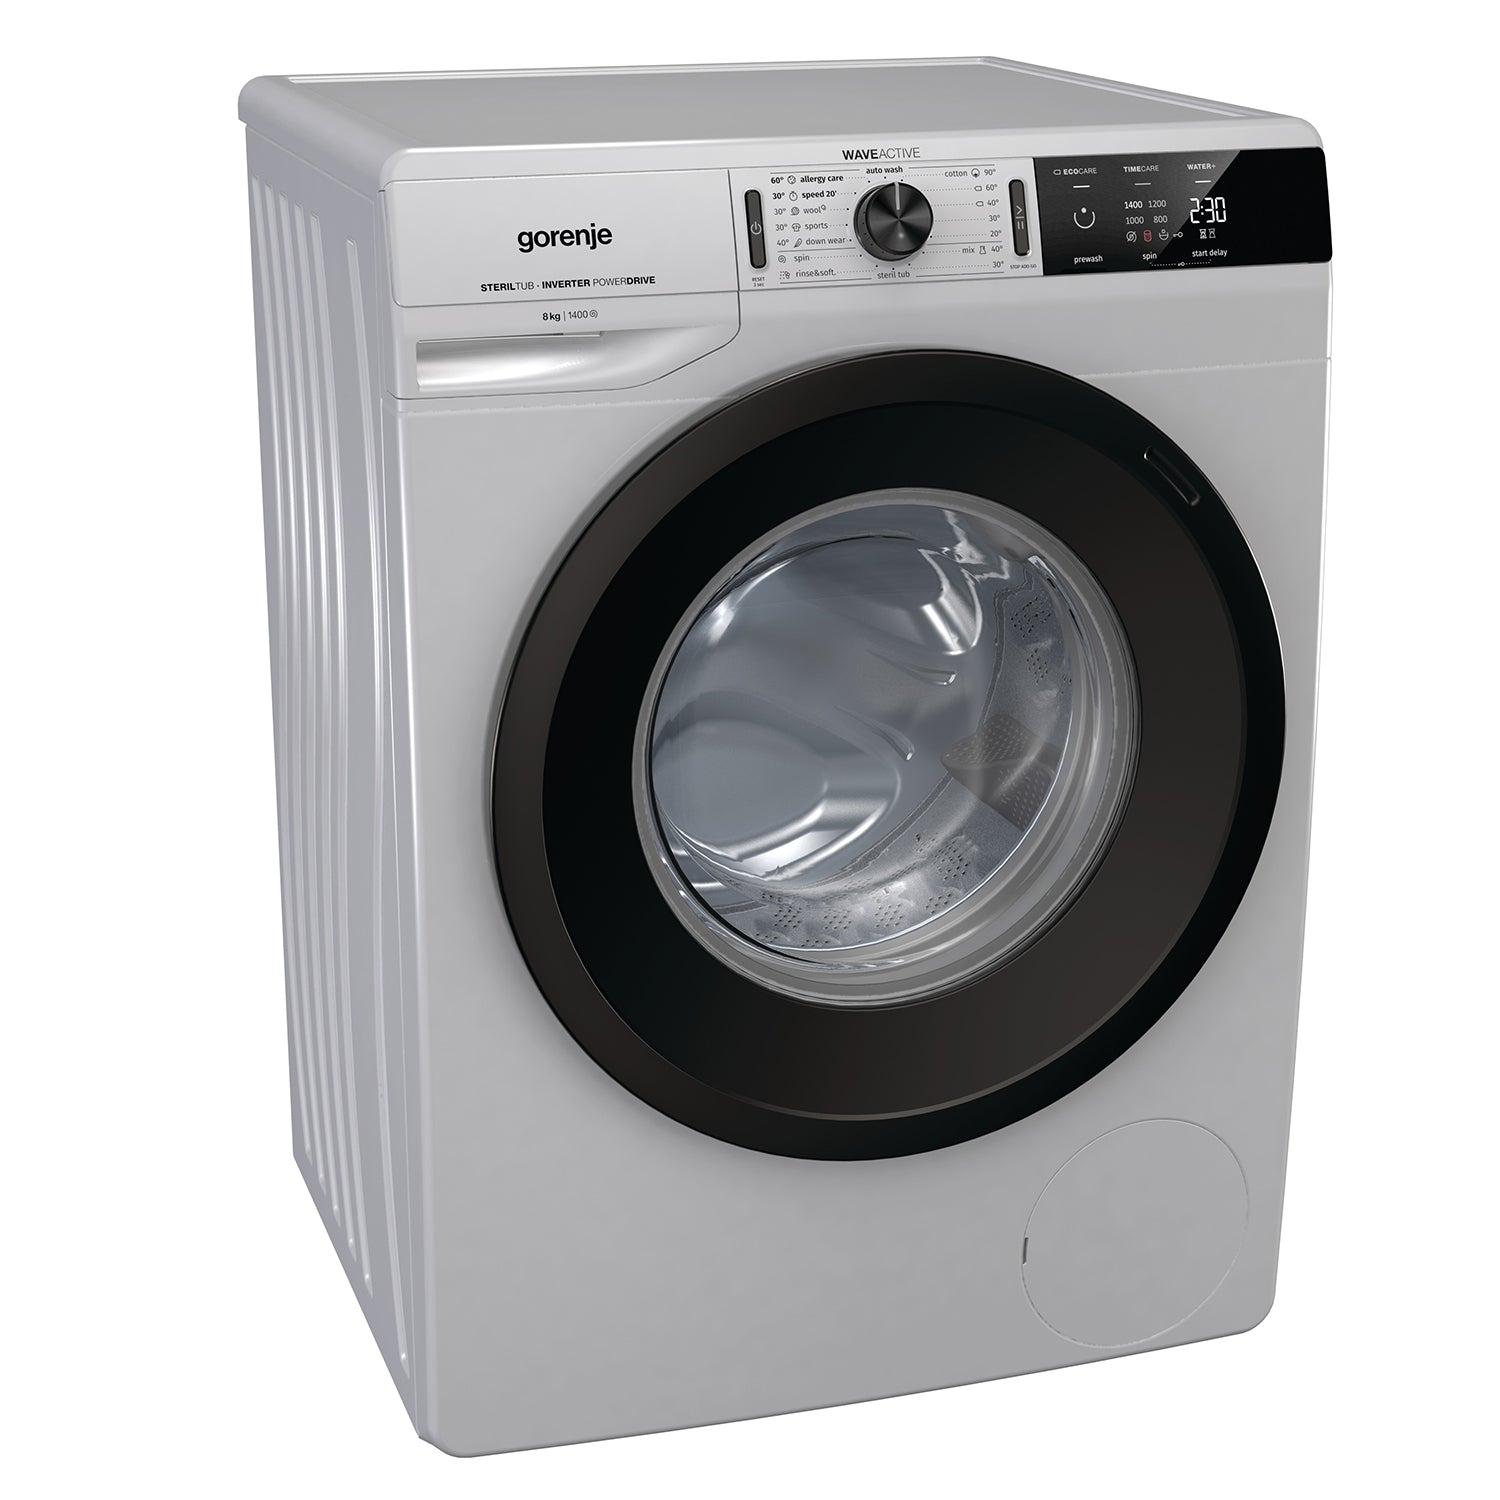 Gorenje 8kg Front Loader Washing Machine in Silver WEI843A